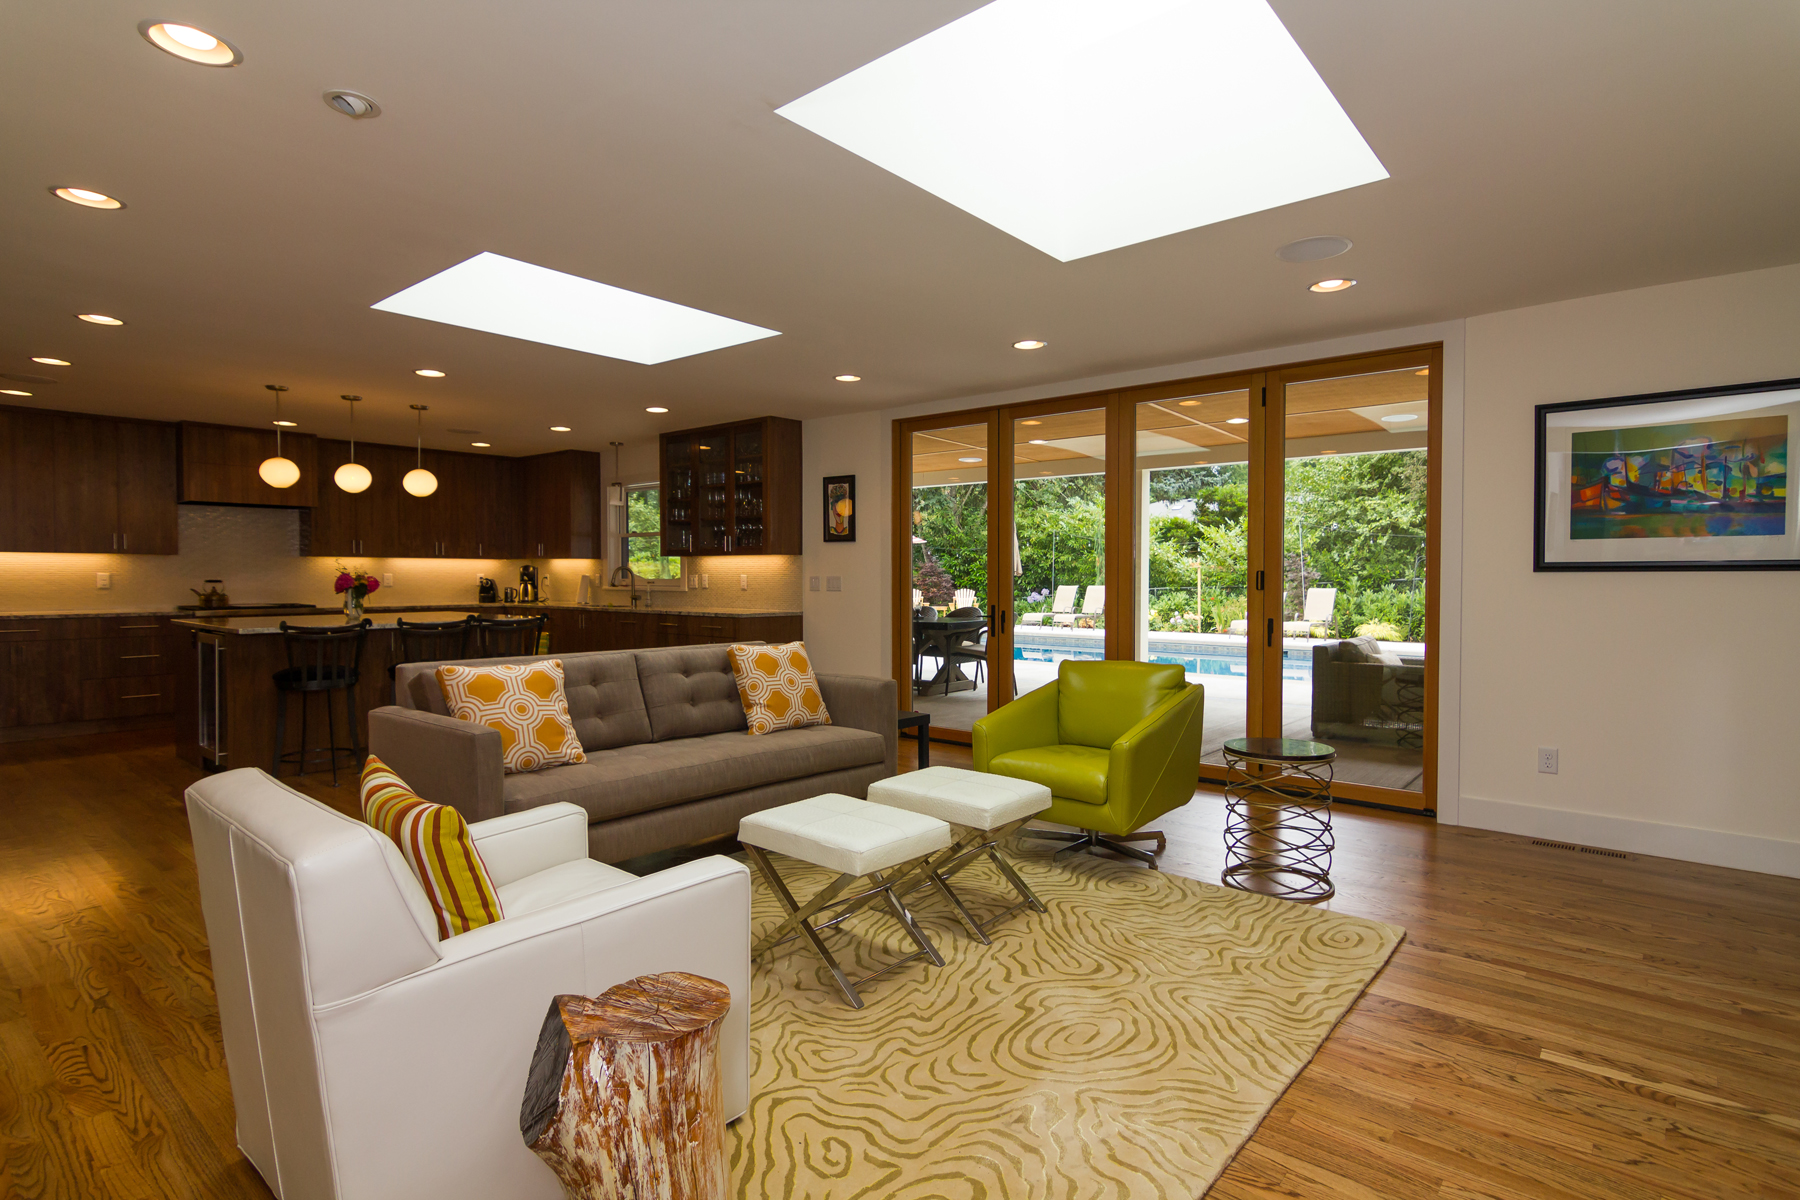 Open floor plan living space. La Cantina Doors allow seamless interior/exterior transition. Two skylights open up the space vertically and provide lots of natural light, even on overcast days.